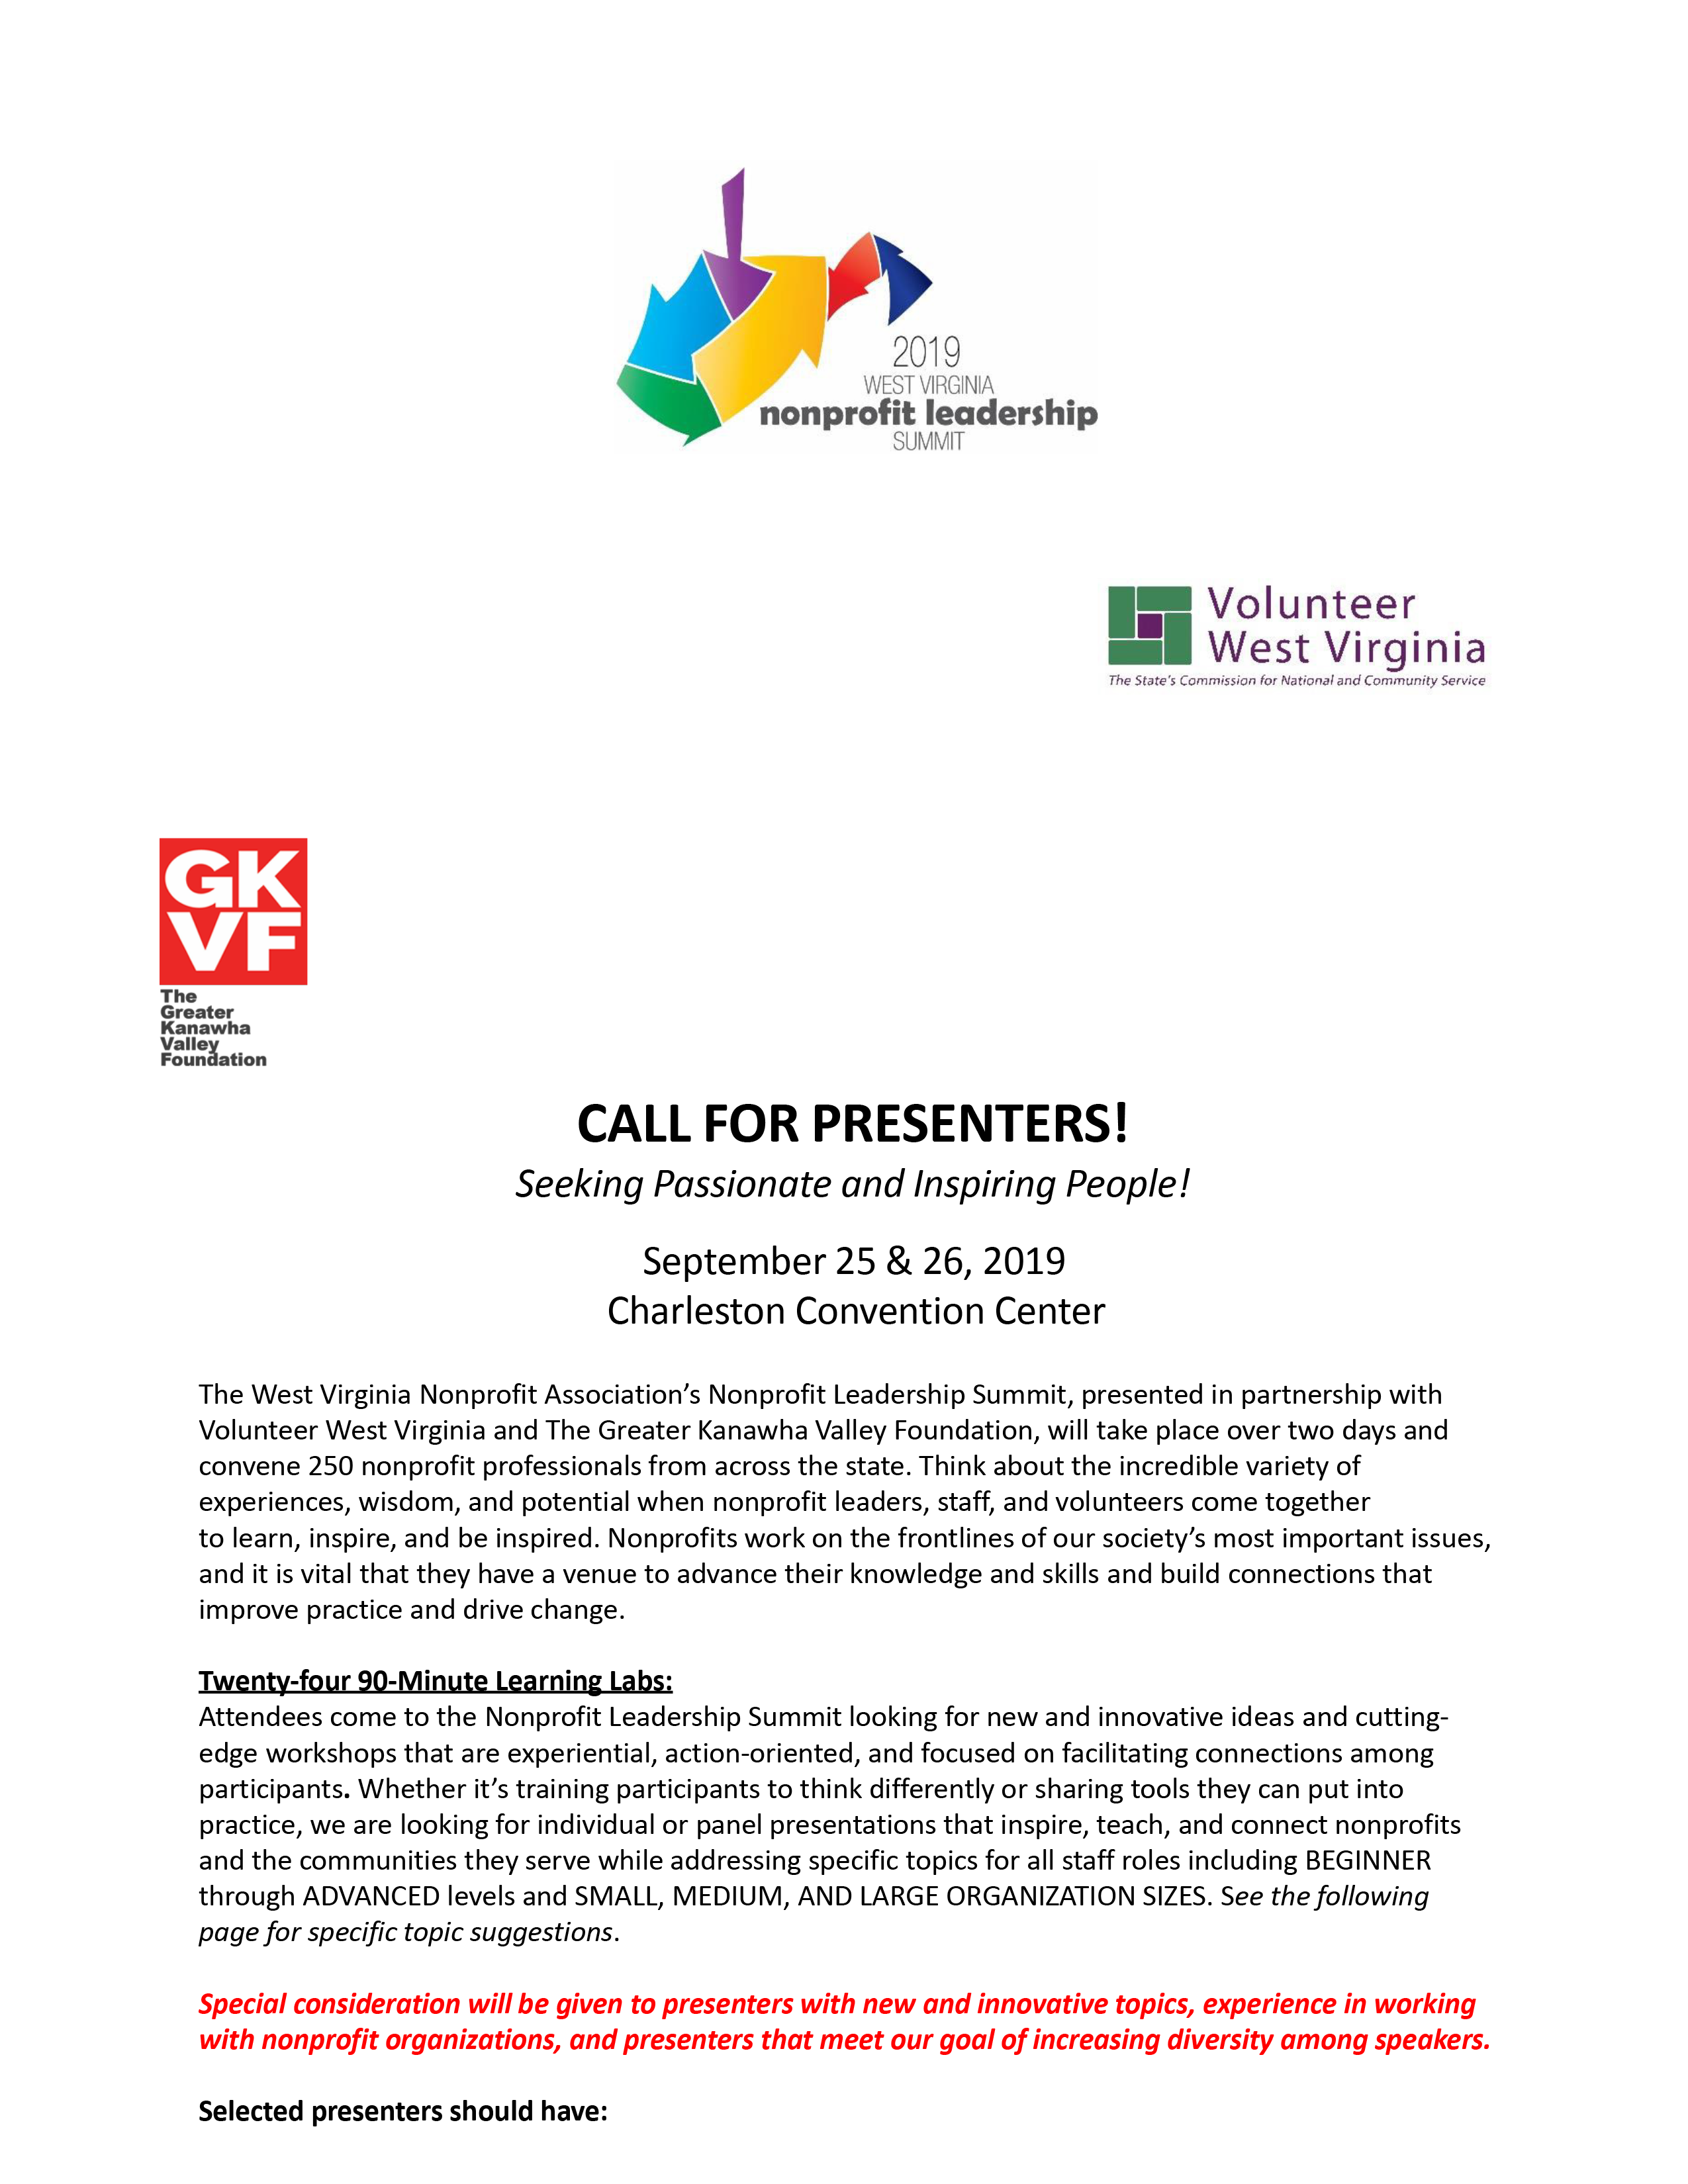 CALL FOR PRESENTERS! - The Greater Kanawha Valley Foundation